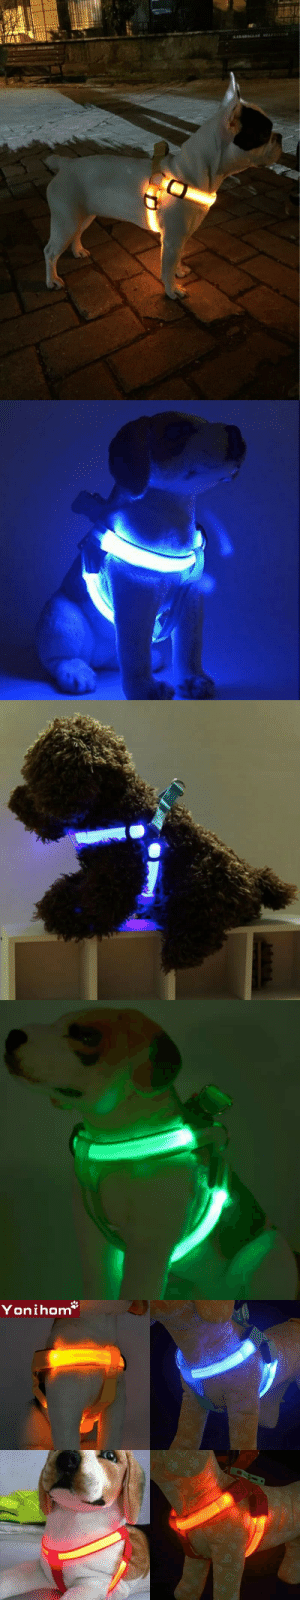 """awesomage:   The LED Harness enables you to locate your dog at night so be easily seen from a great distance, keeping it safe from night traffic accidents. SPECIAL DISCOUNT OF 30% OFF PLUS FREE SHIPPING WITH COUPON CODE """"CUDDLING"""" For every sale made, a rescue dog is fed!   https://www.doggiemon.com/products/led-harness : awesomage:   The LED Harness enables you to locate your dog at night so be easily seen from a great distance, keeping it safe from night traffic accidents. SPECIAL DISCOUNT OF 30% OFF PLUS FREE SHIPPING WITH COUPON CODE """"CUDDLING"""" For every sale made, a rescue dog is fed!   https://www.doggiemon.com/products/led-harness"""